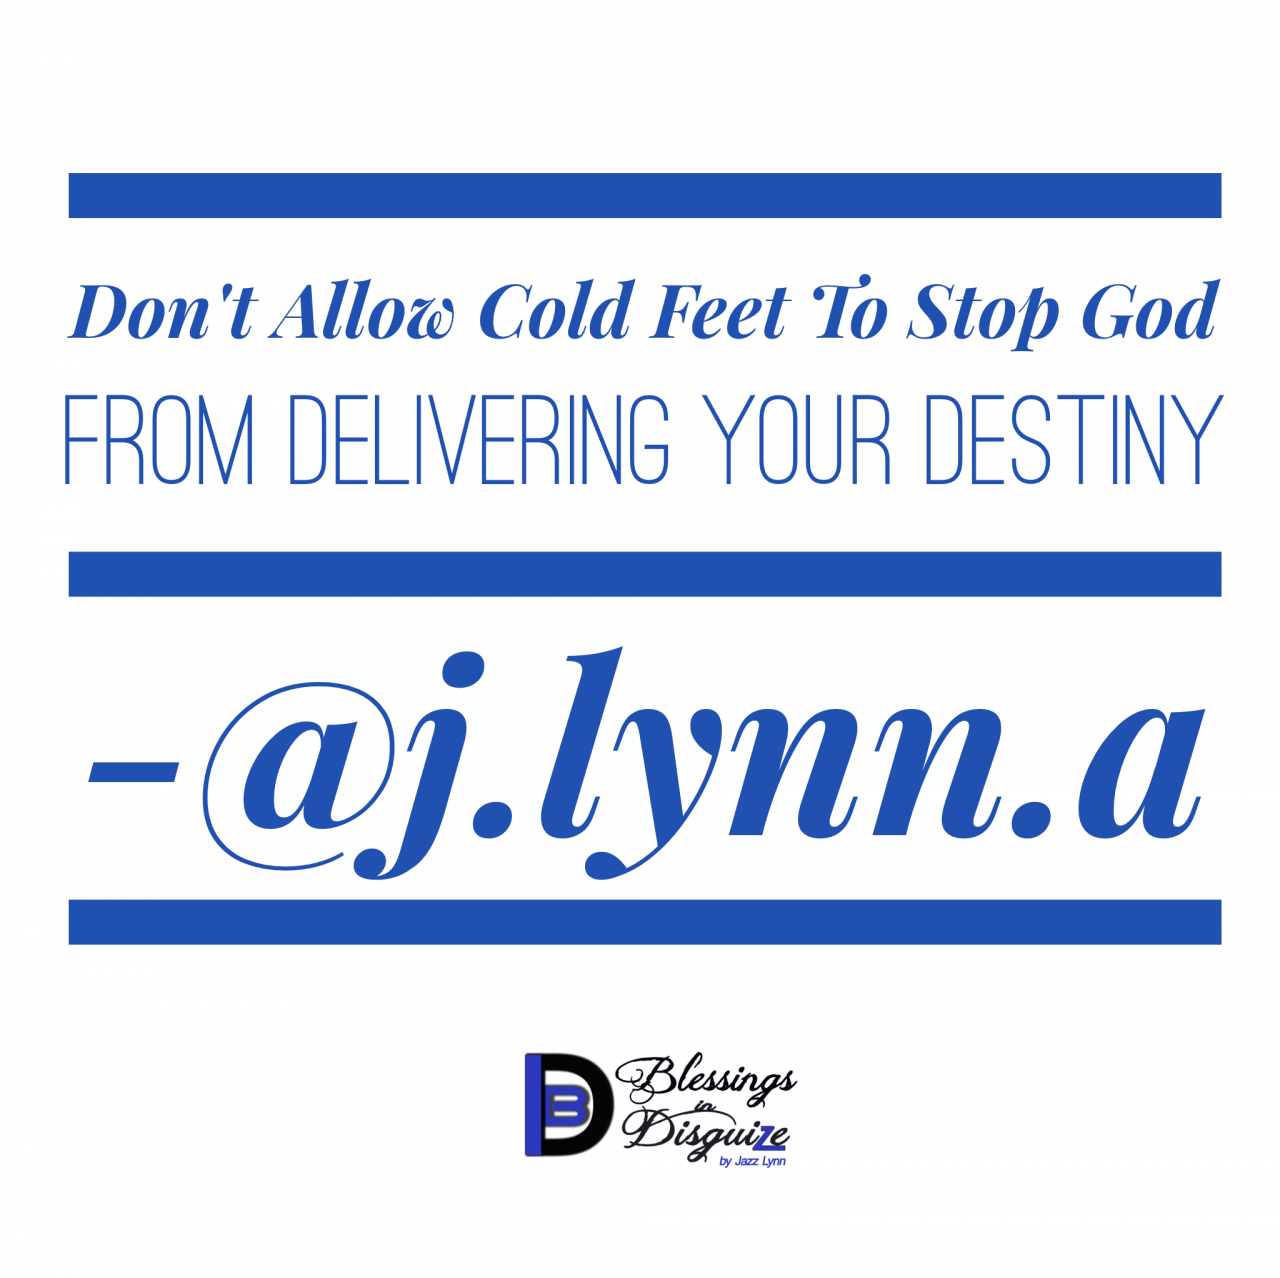 Don't Allow Cold Feet To Stop God from Delivering Your Destiny